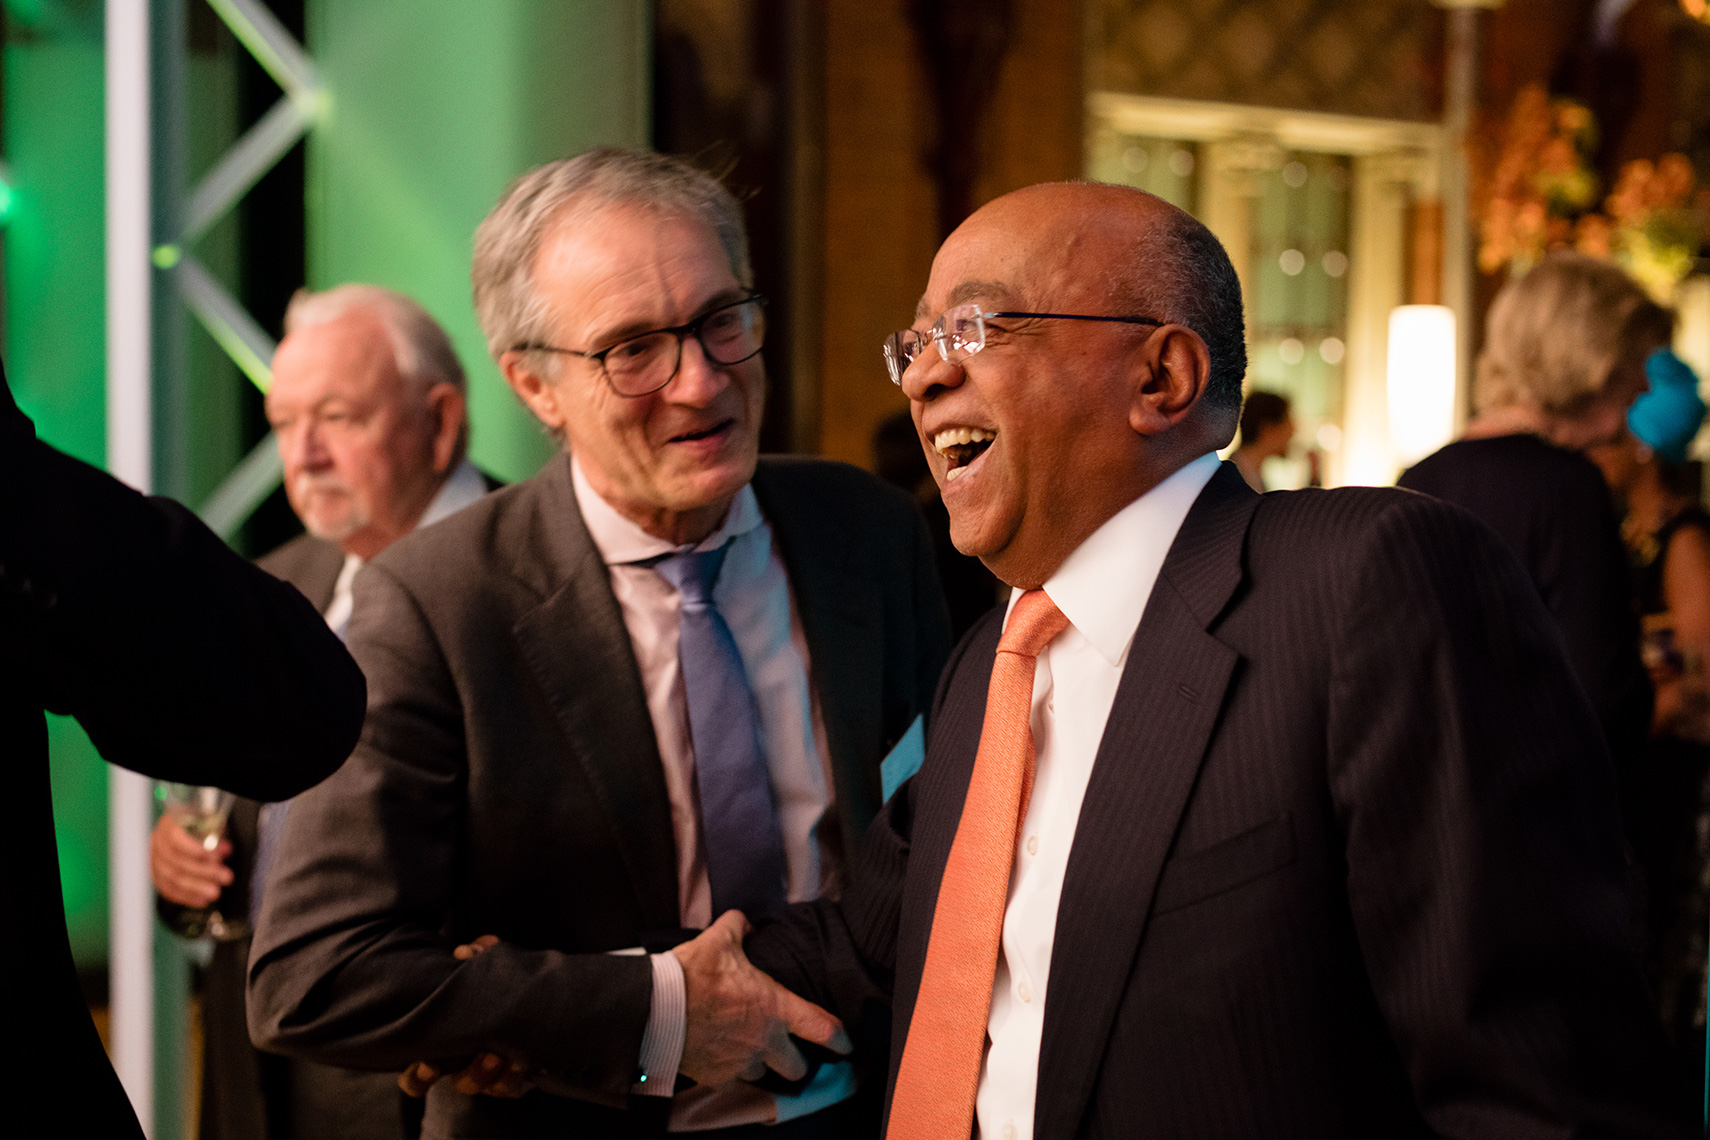 Businessmen in suit laughing and shaking hands with Mo Ibrahim at gala event in London